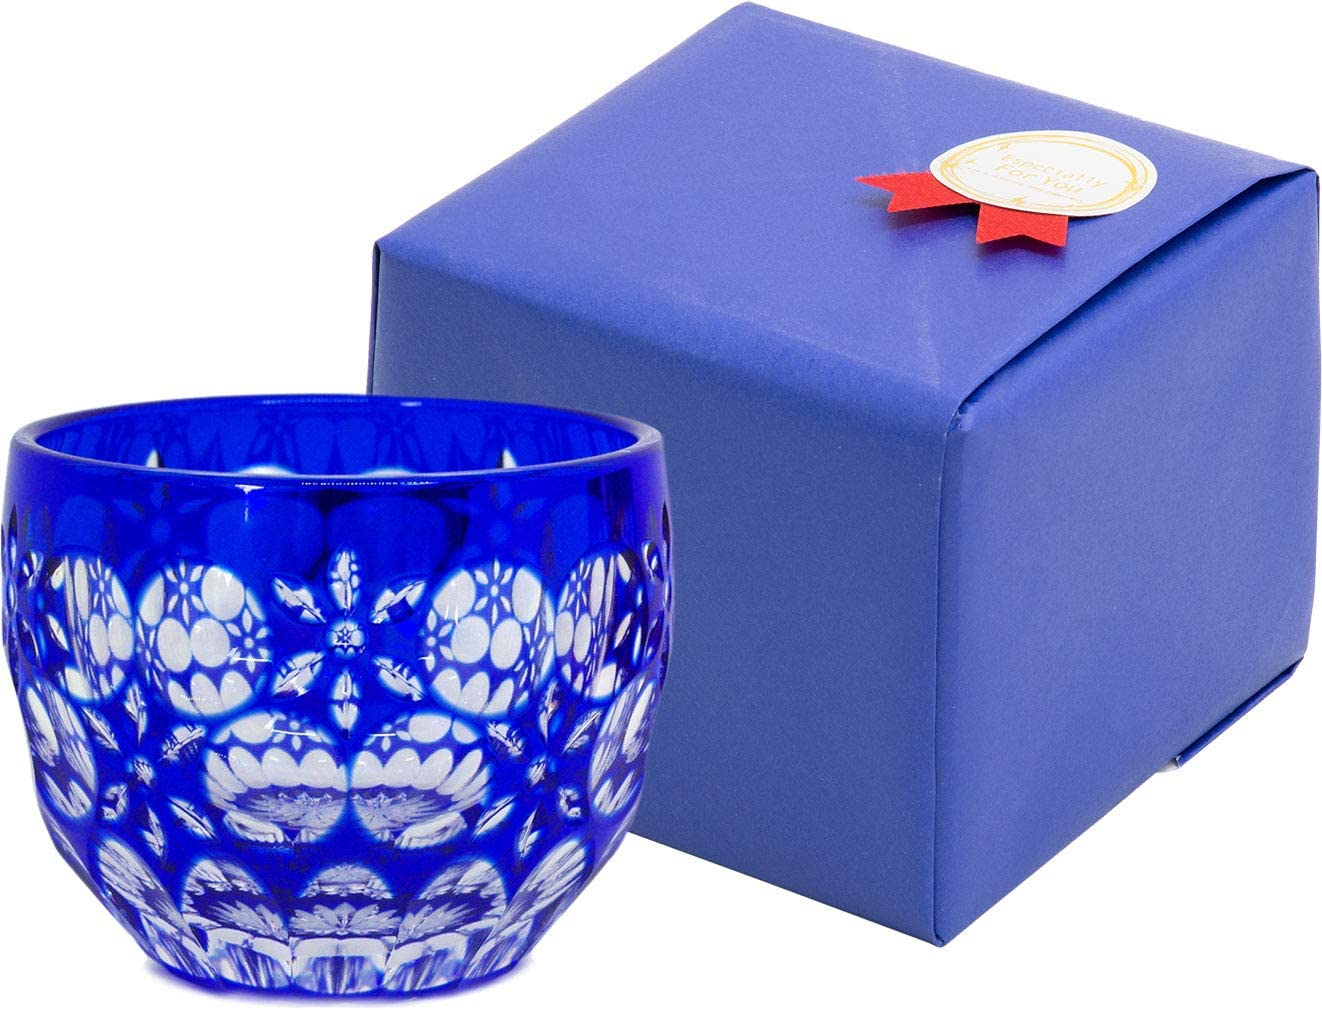 【Gift Wrapped】 Ohba Glass Edo Cut Kiriko Japane Outlet ☆ Limited time trial price Free Shipping